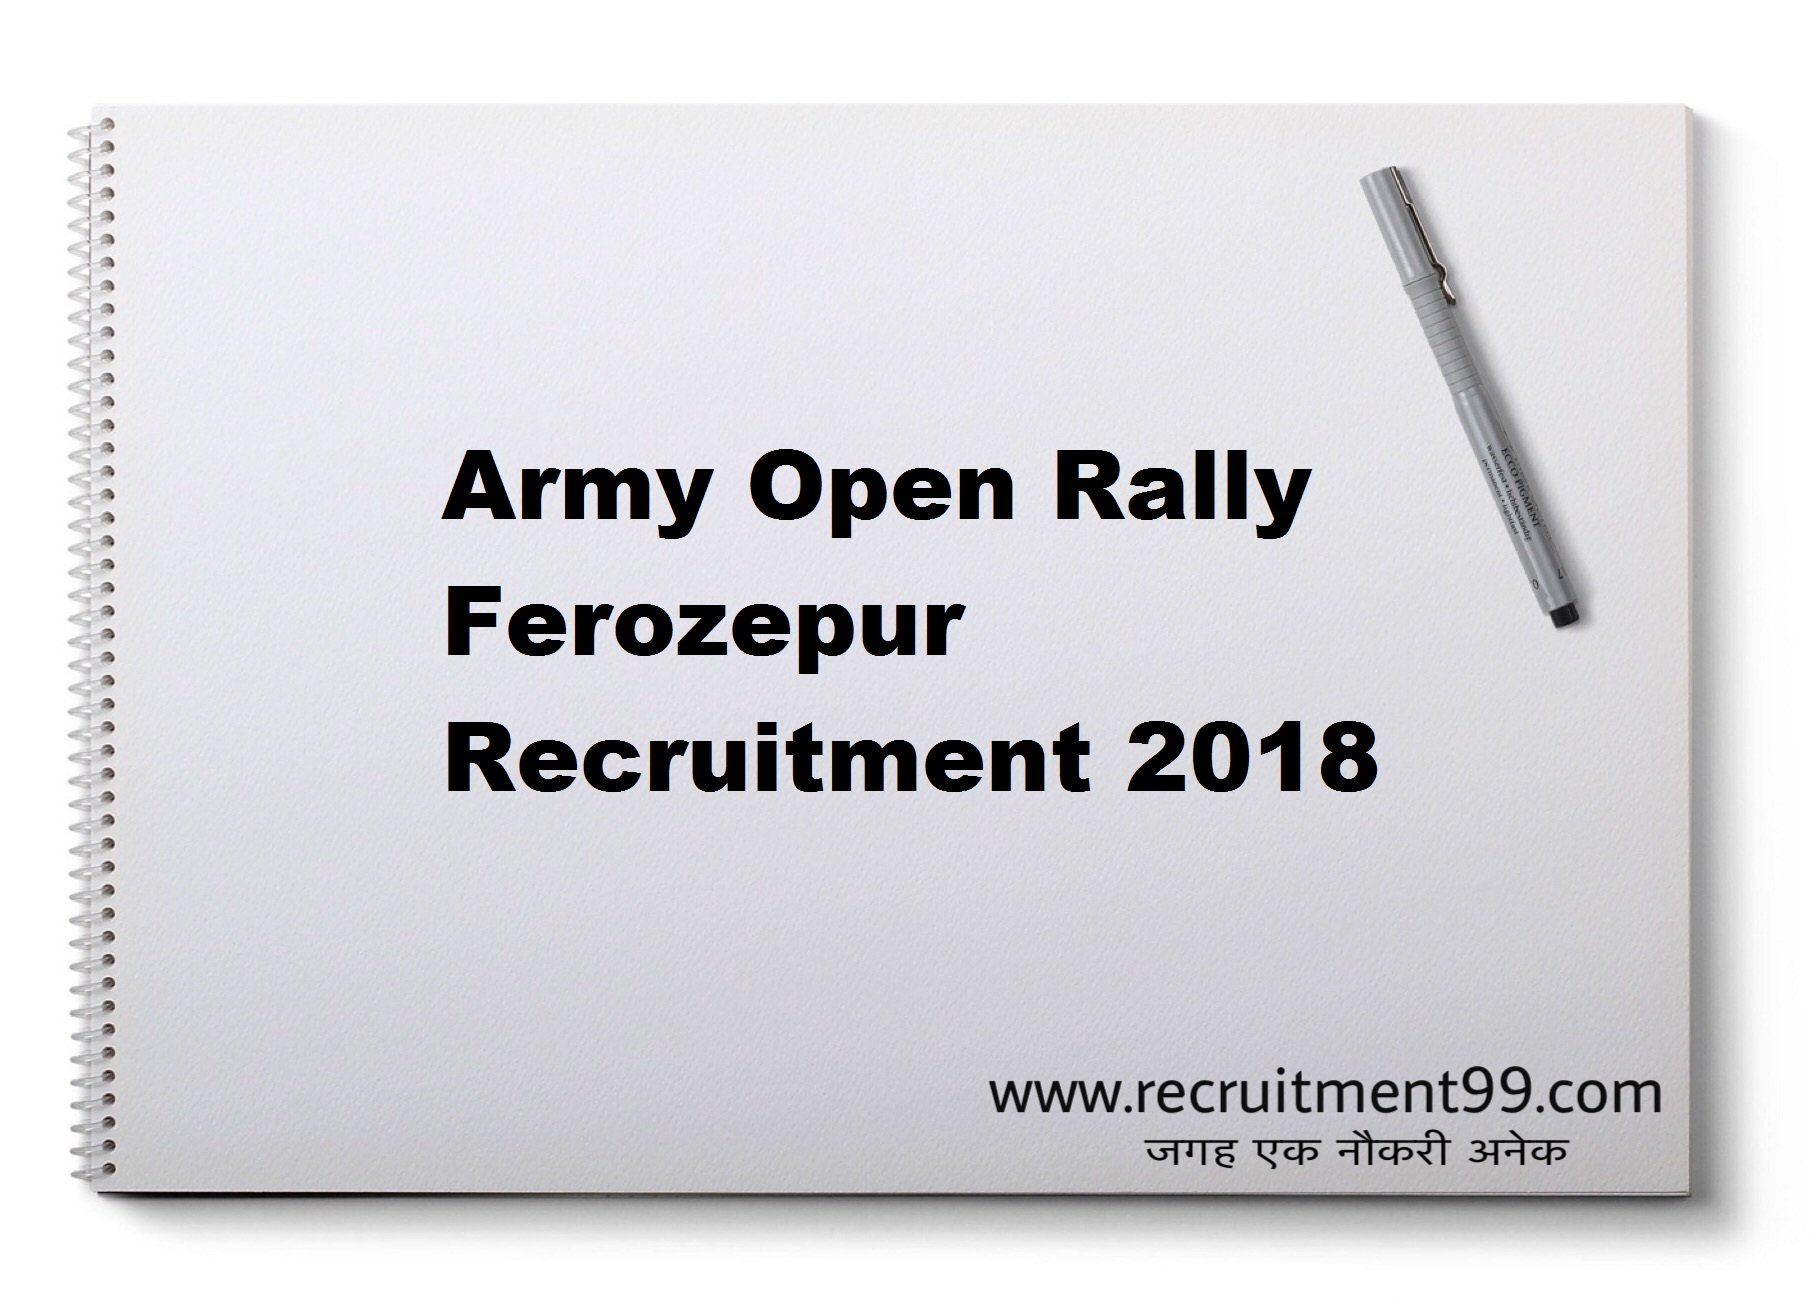 Army Open Rally Ferozepur Recruitment Admit Card Result 2018